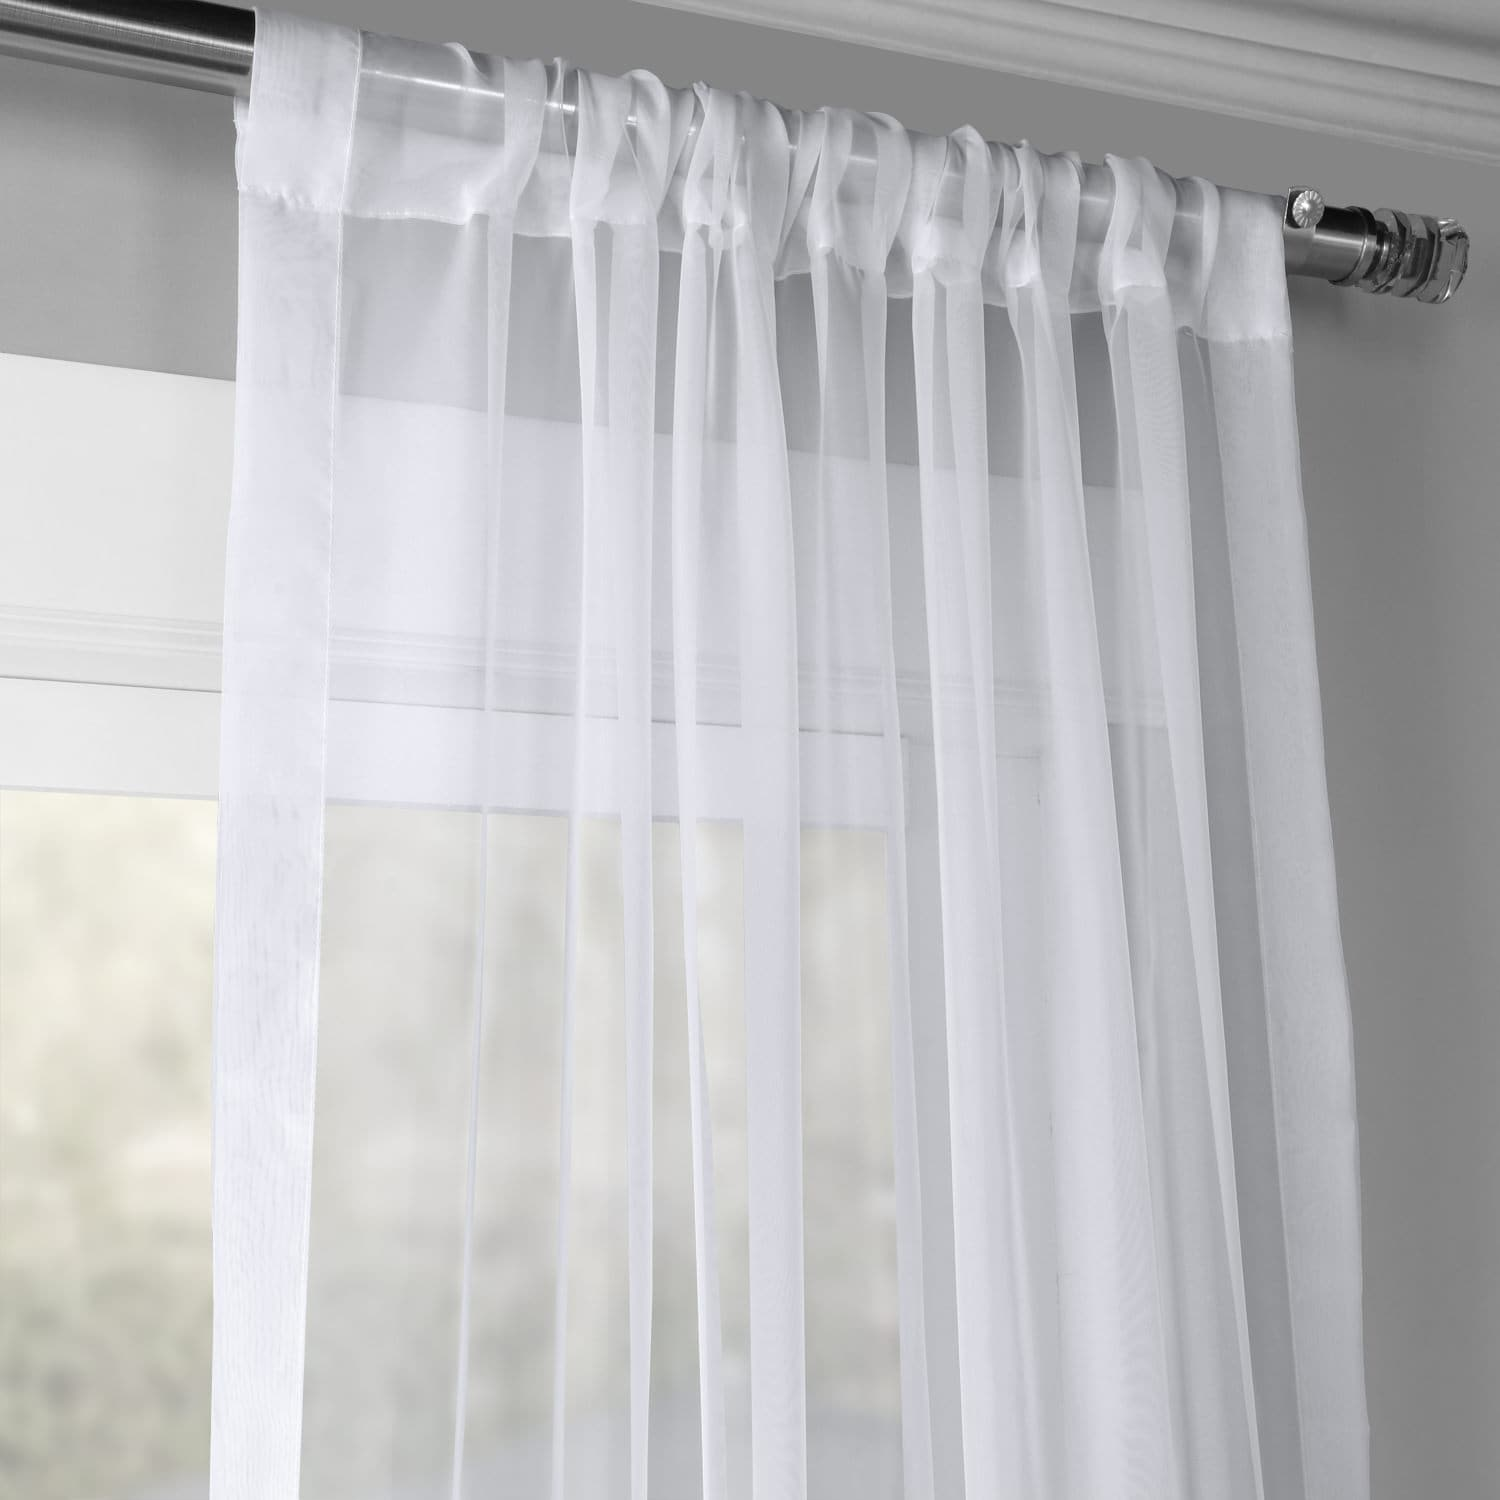 Buy Solid White Voile Poly Sheer Curtains Pair